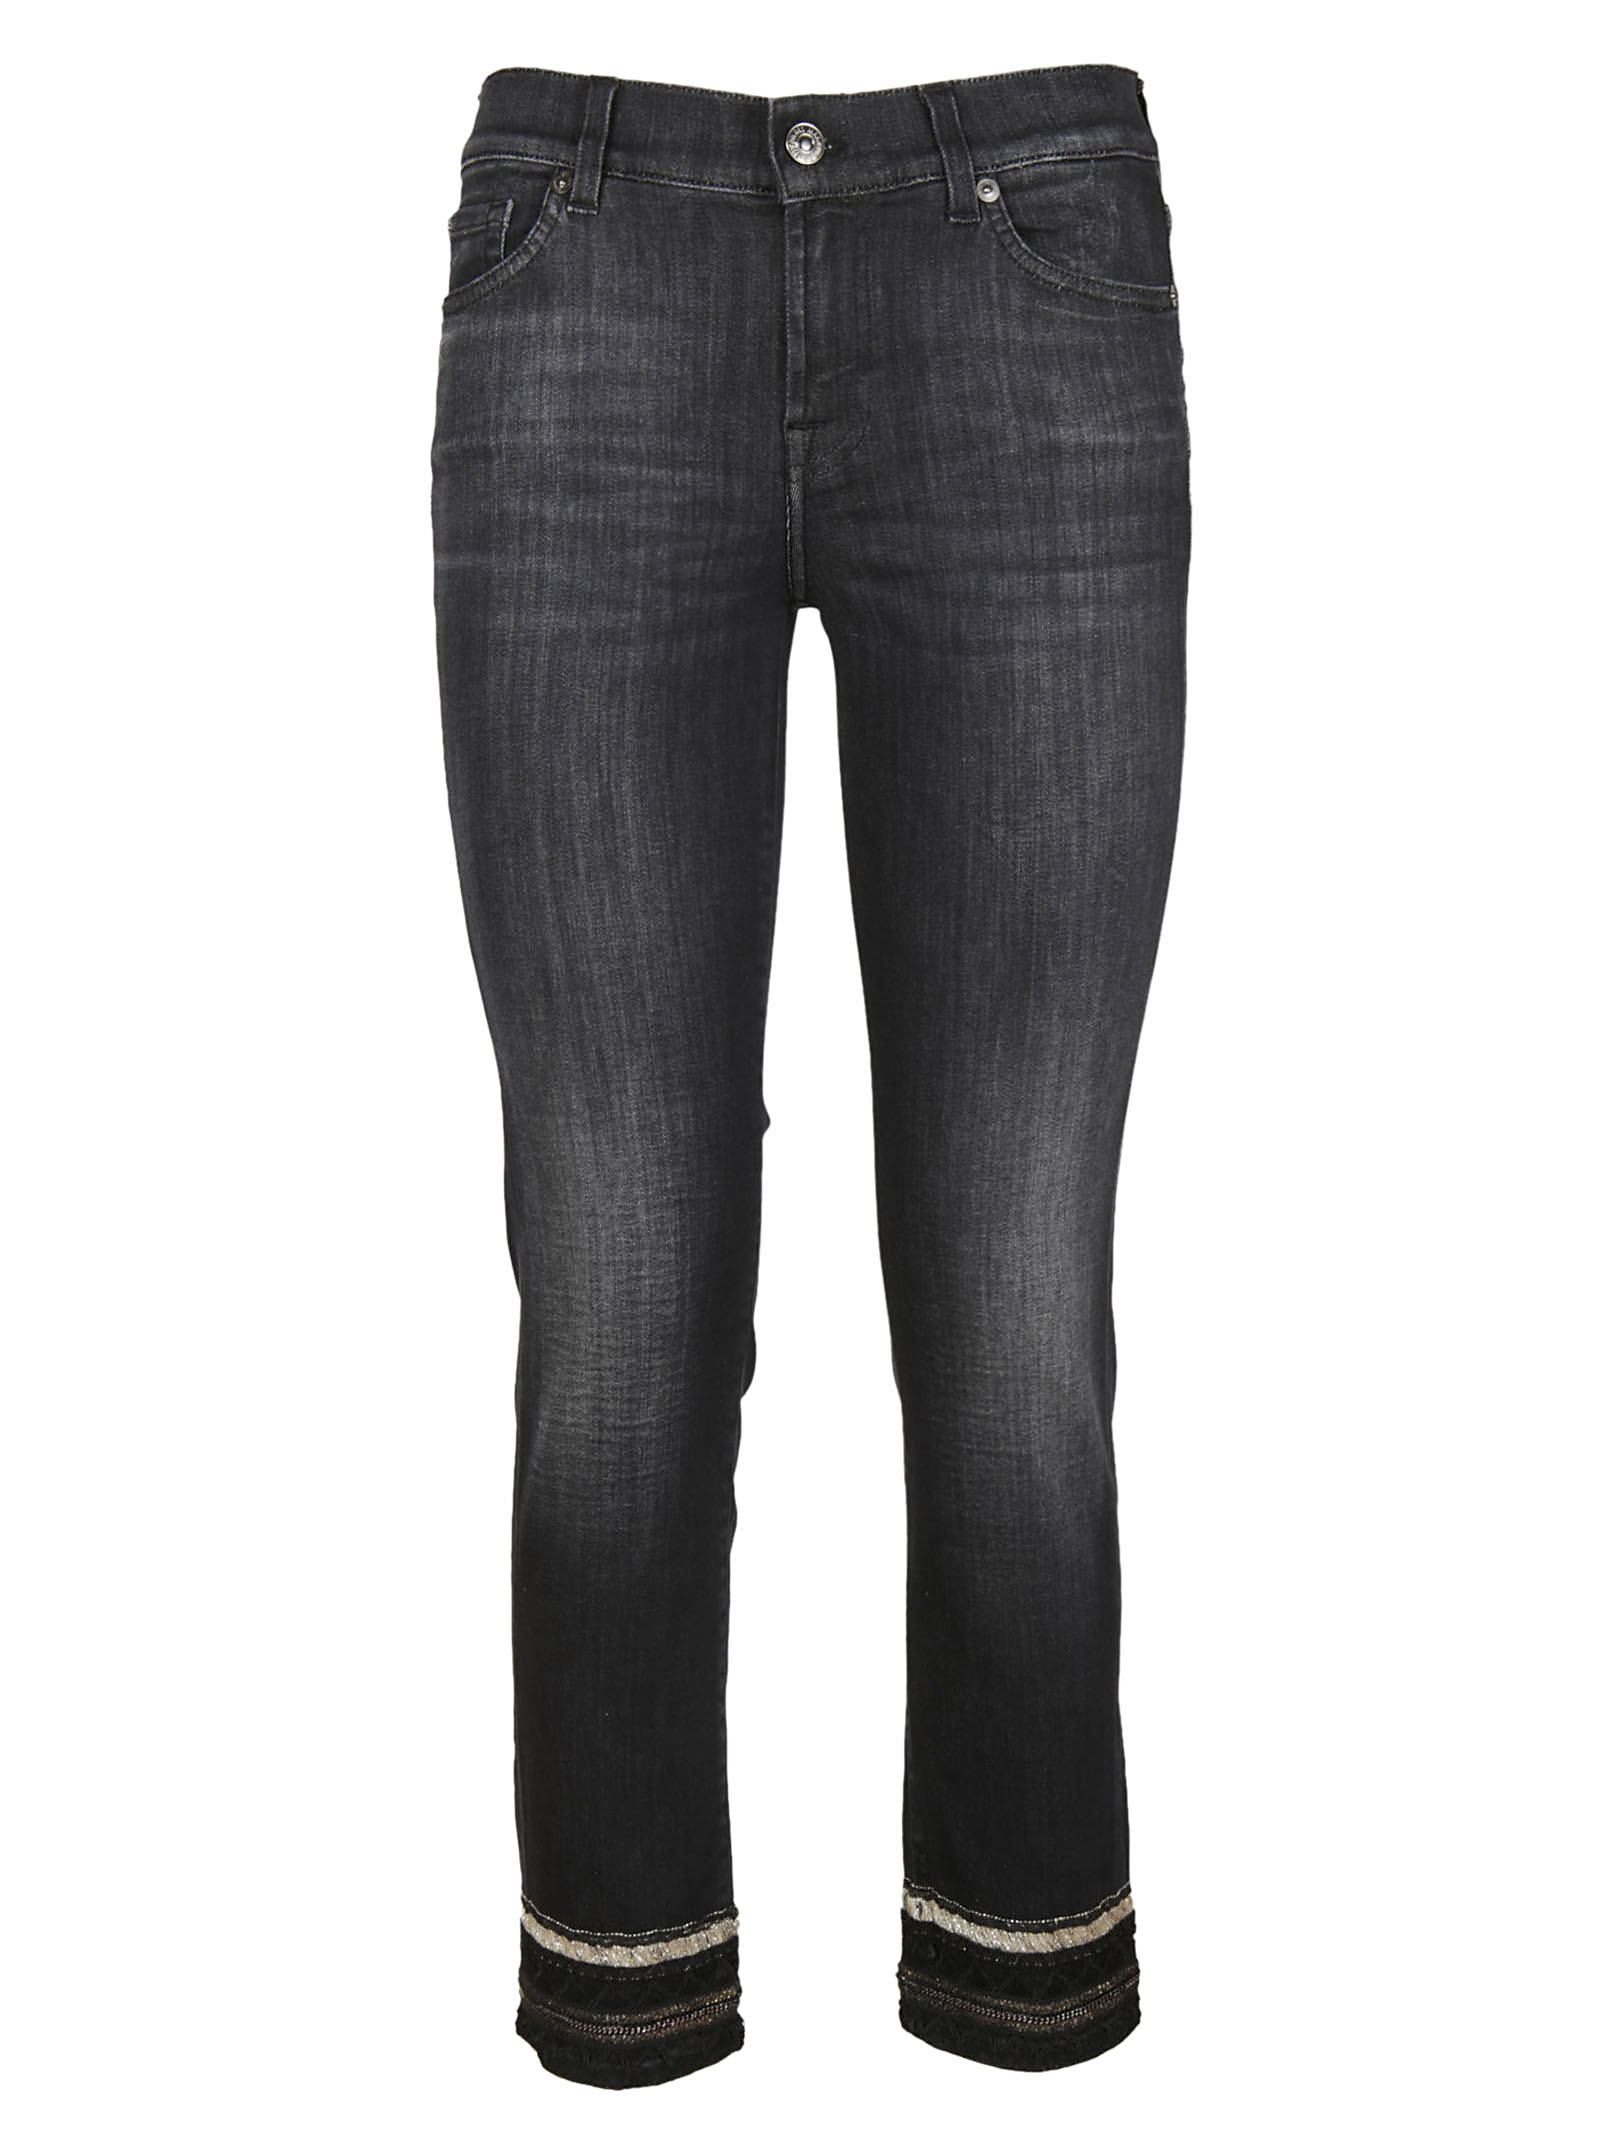 7 For All Mankind MID RISE ROXANNE